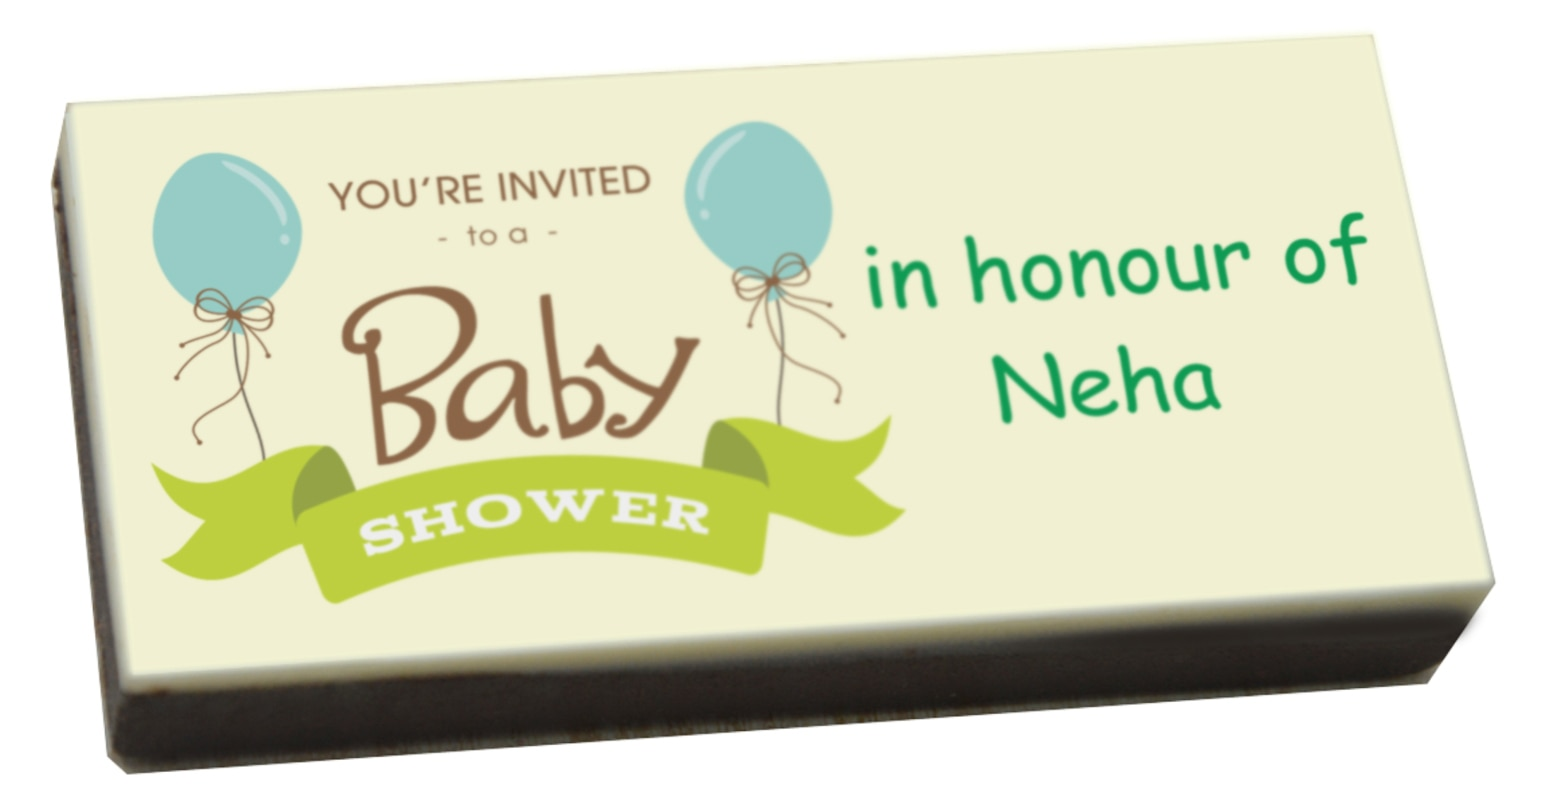 Baby showers are happy occasions when you share the joy of parenthood with your loved ones. Baby shower invitations can be unique and innovative in the form of printed chocolates. Send this unique baby shower gifts to your loved ones that will surely surprise them. Our chocolates are made from quality ingredients with the prints done in edible ink. We can print a cute baby theme image or a simple thank you on the chocolates for your guests.  https://www.chococraft.in/pages/baby-shower-invitation-gifts-printed-bars